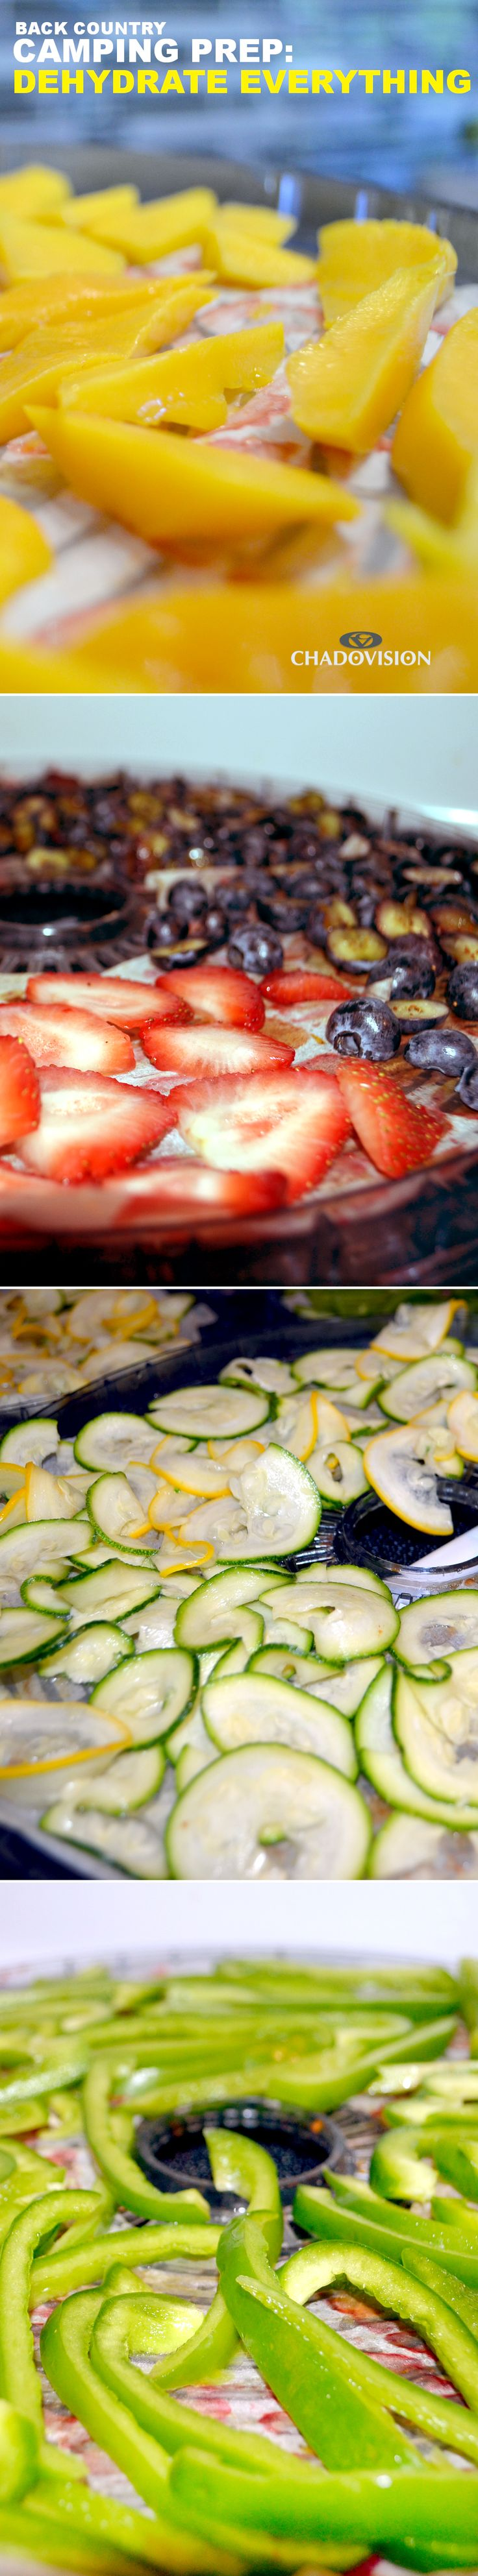 Dehydrate fruits and vegetables for camping or anytime.